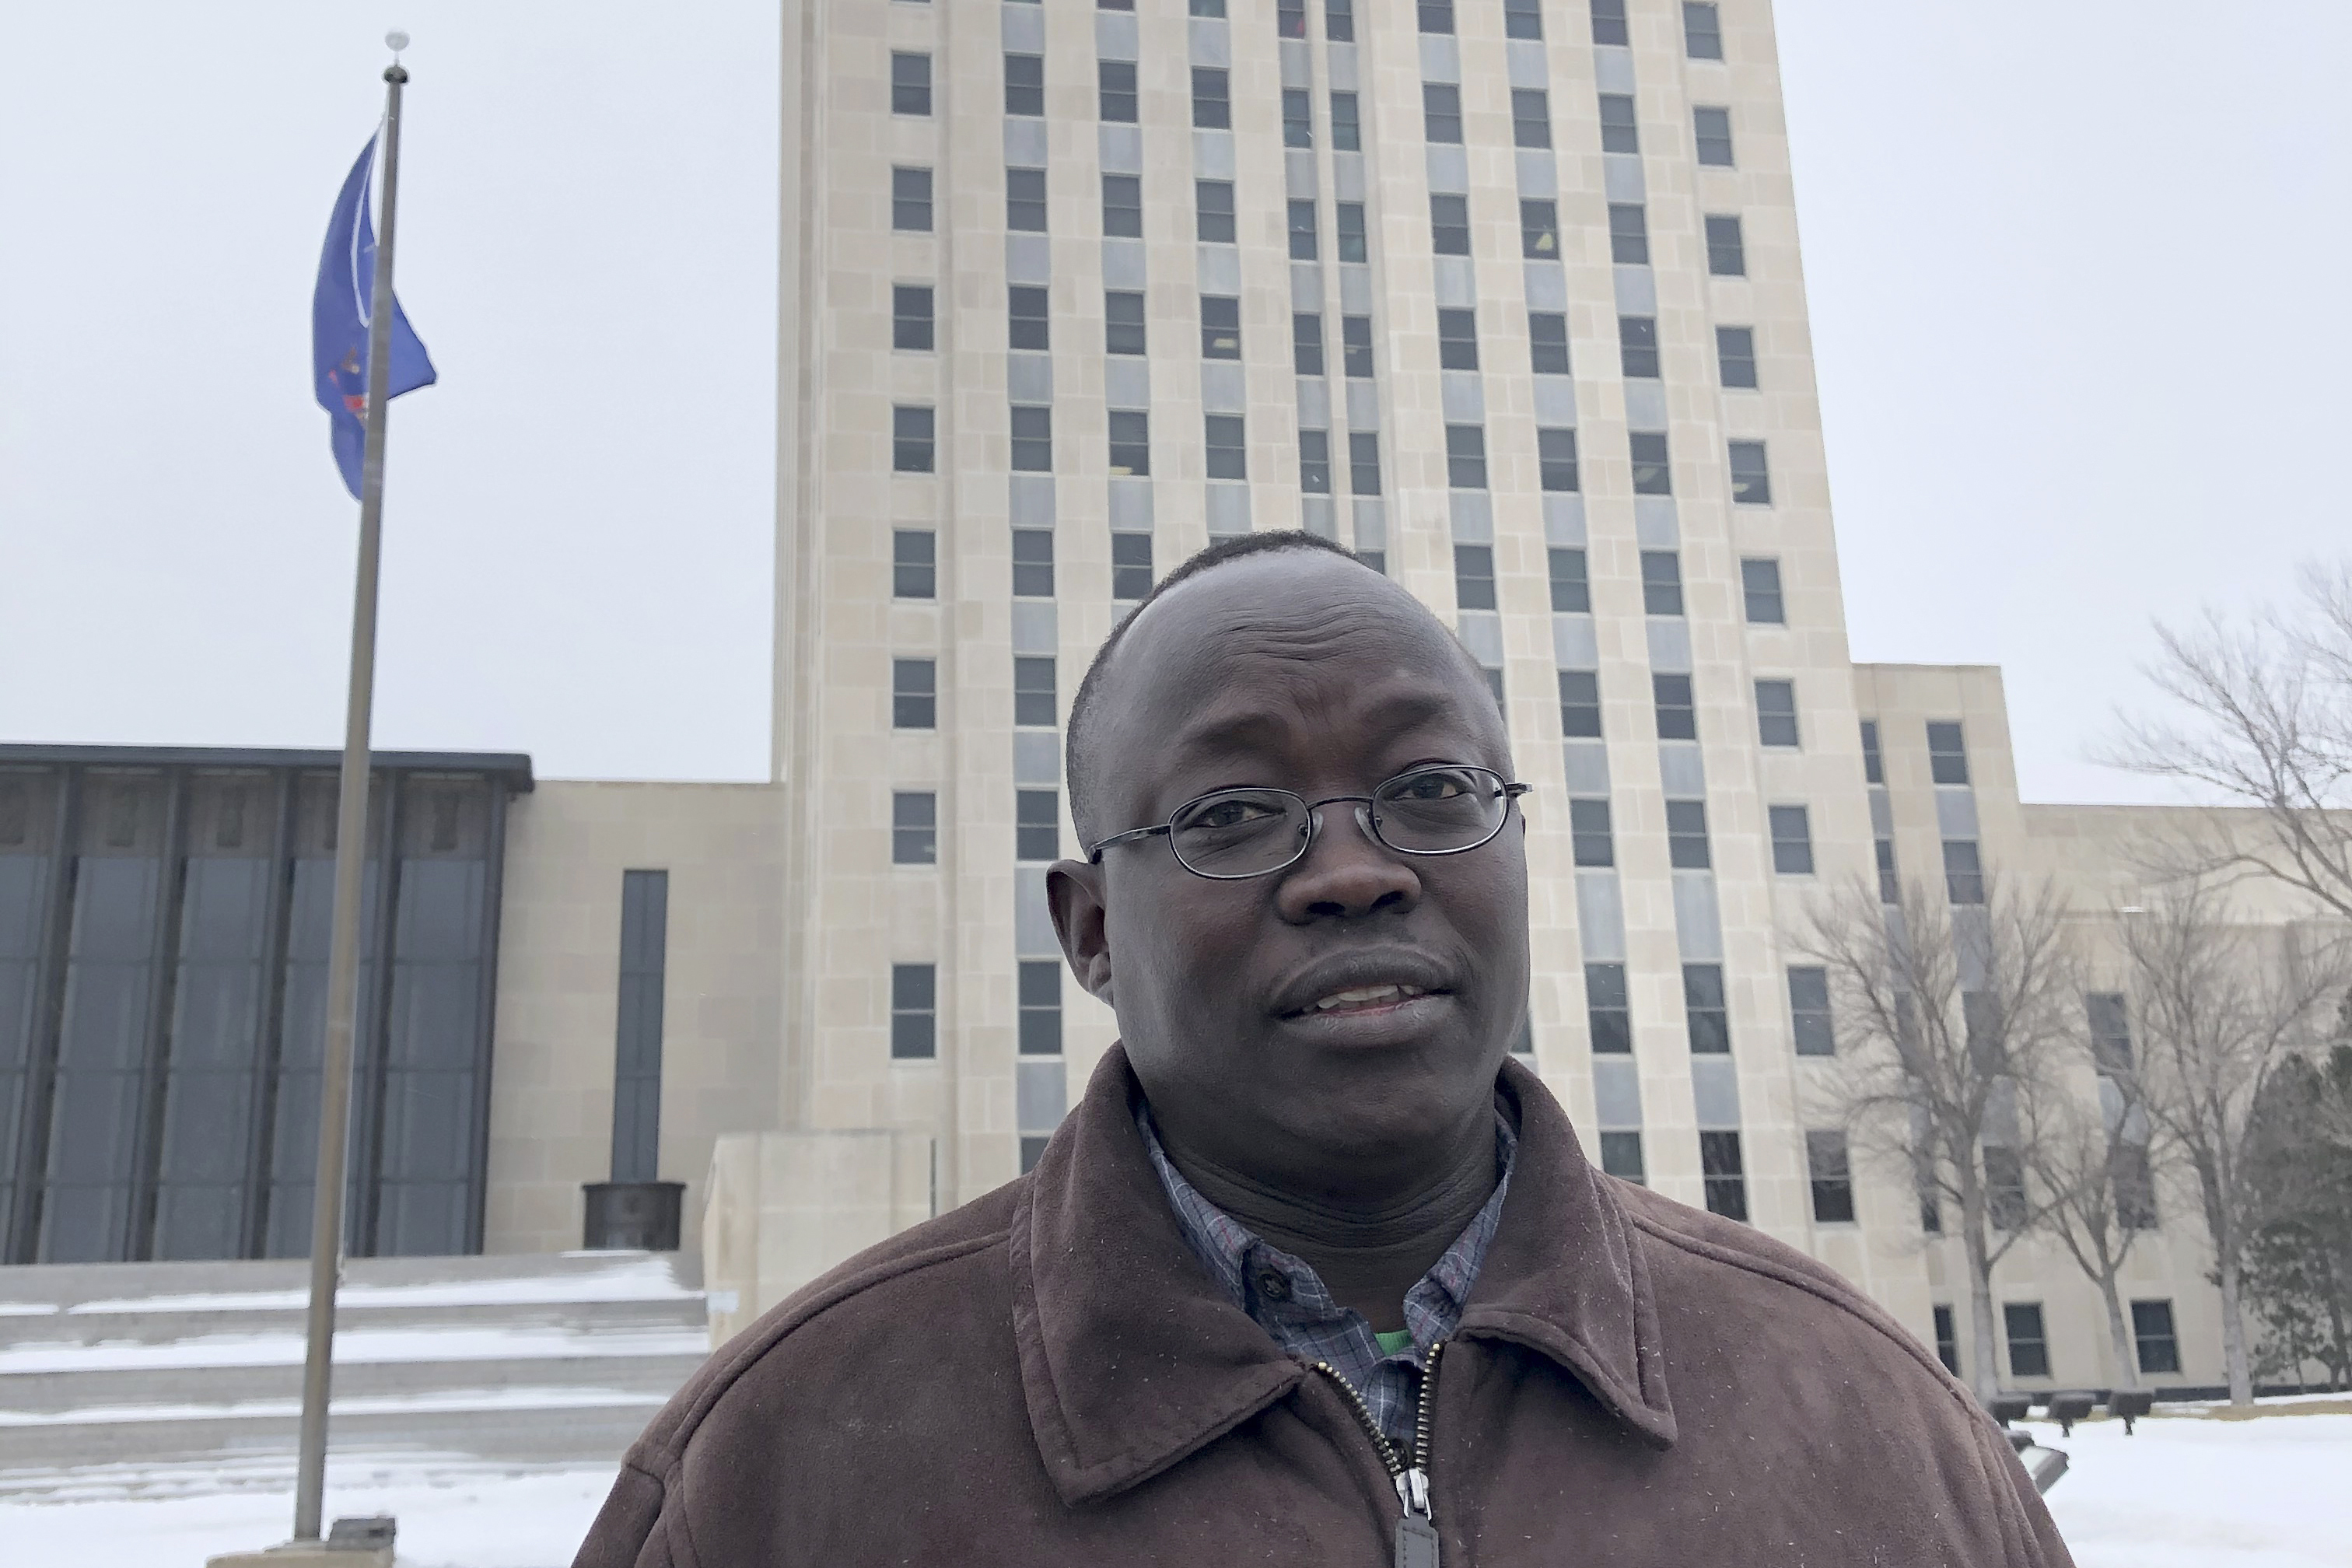 North Dakota County May Become U.S. First to Bar New Refugees